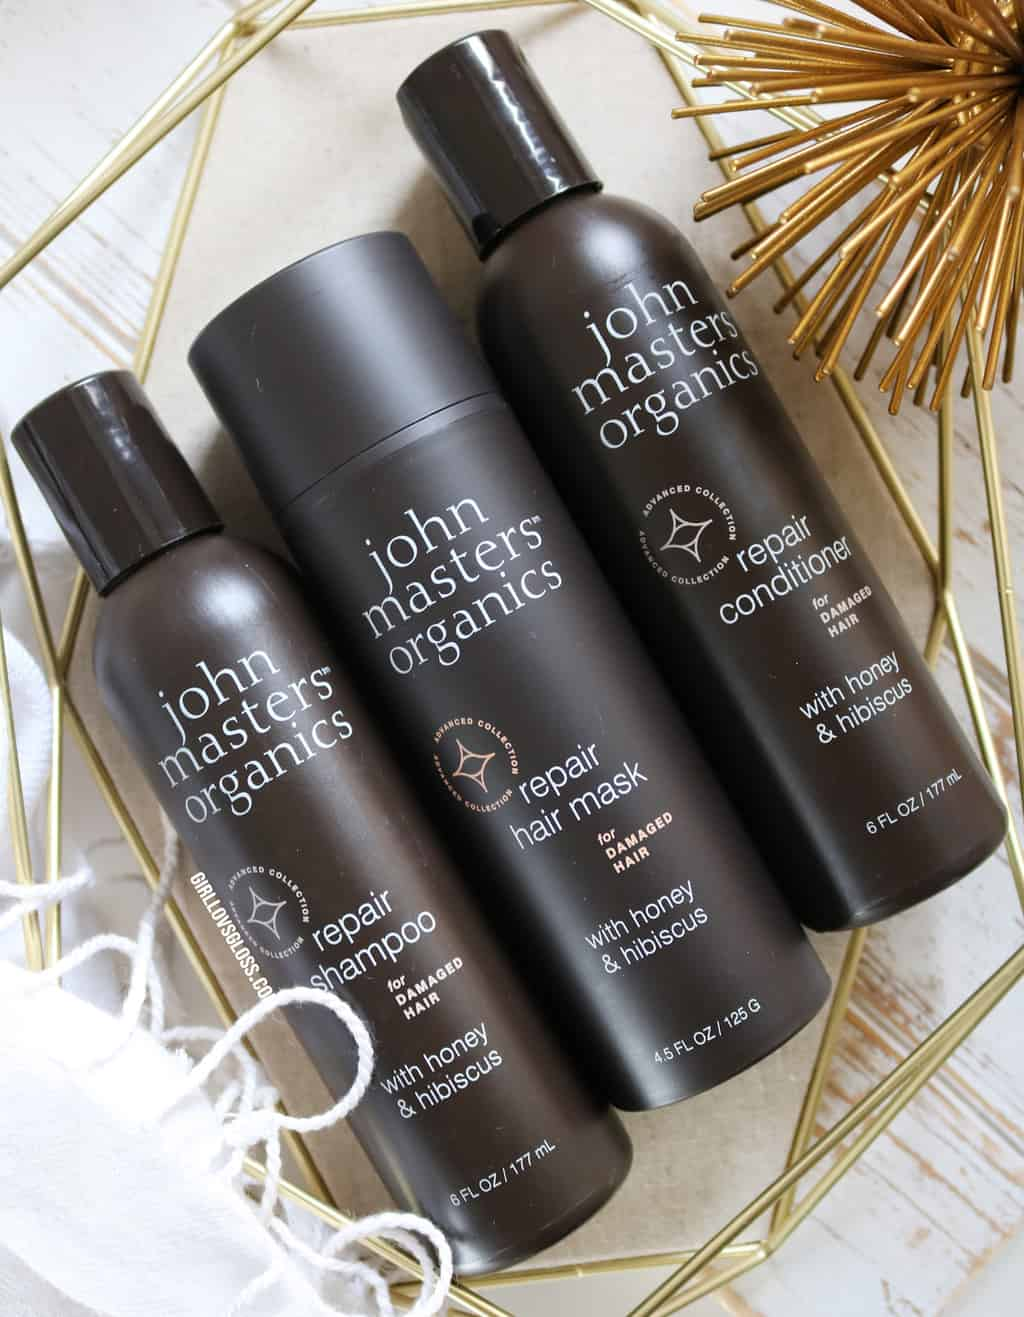 The Triple Threat for Dry or Damaged Hair